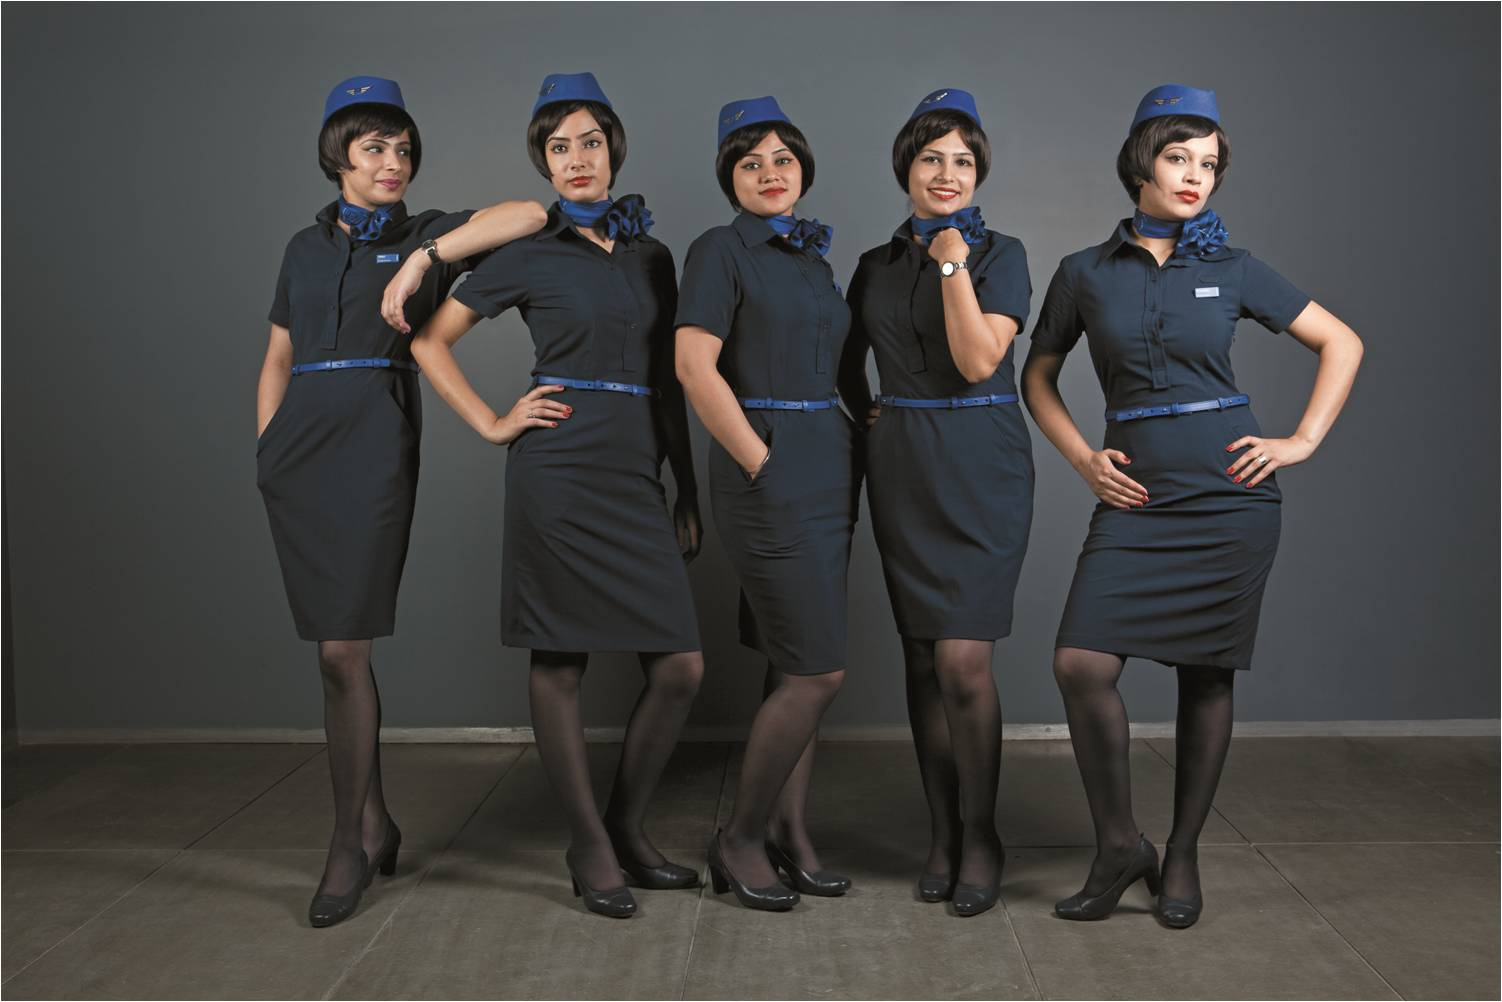 The best cabin crew uniform in